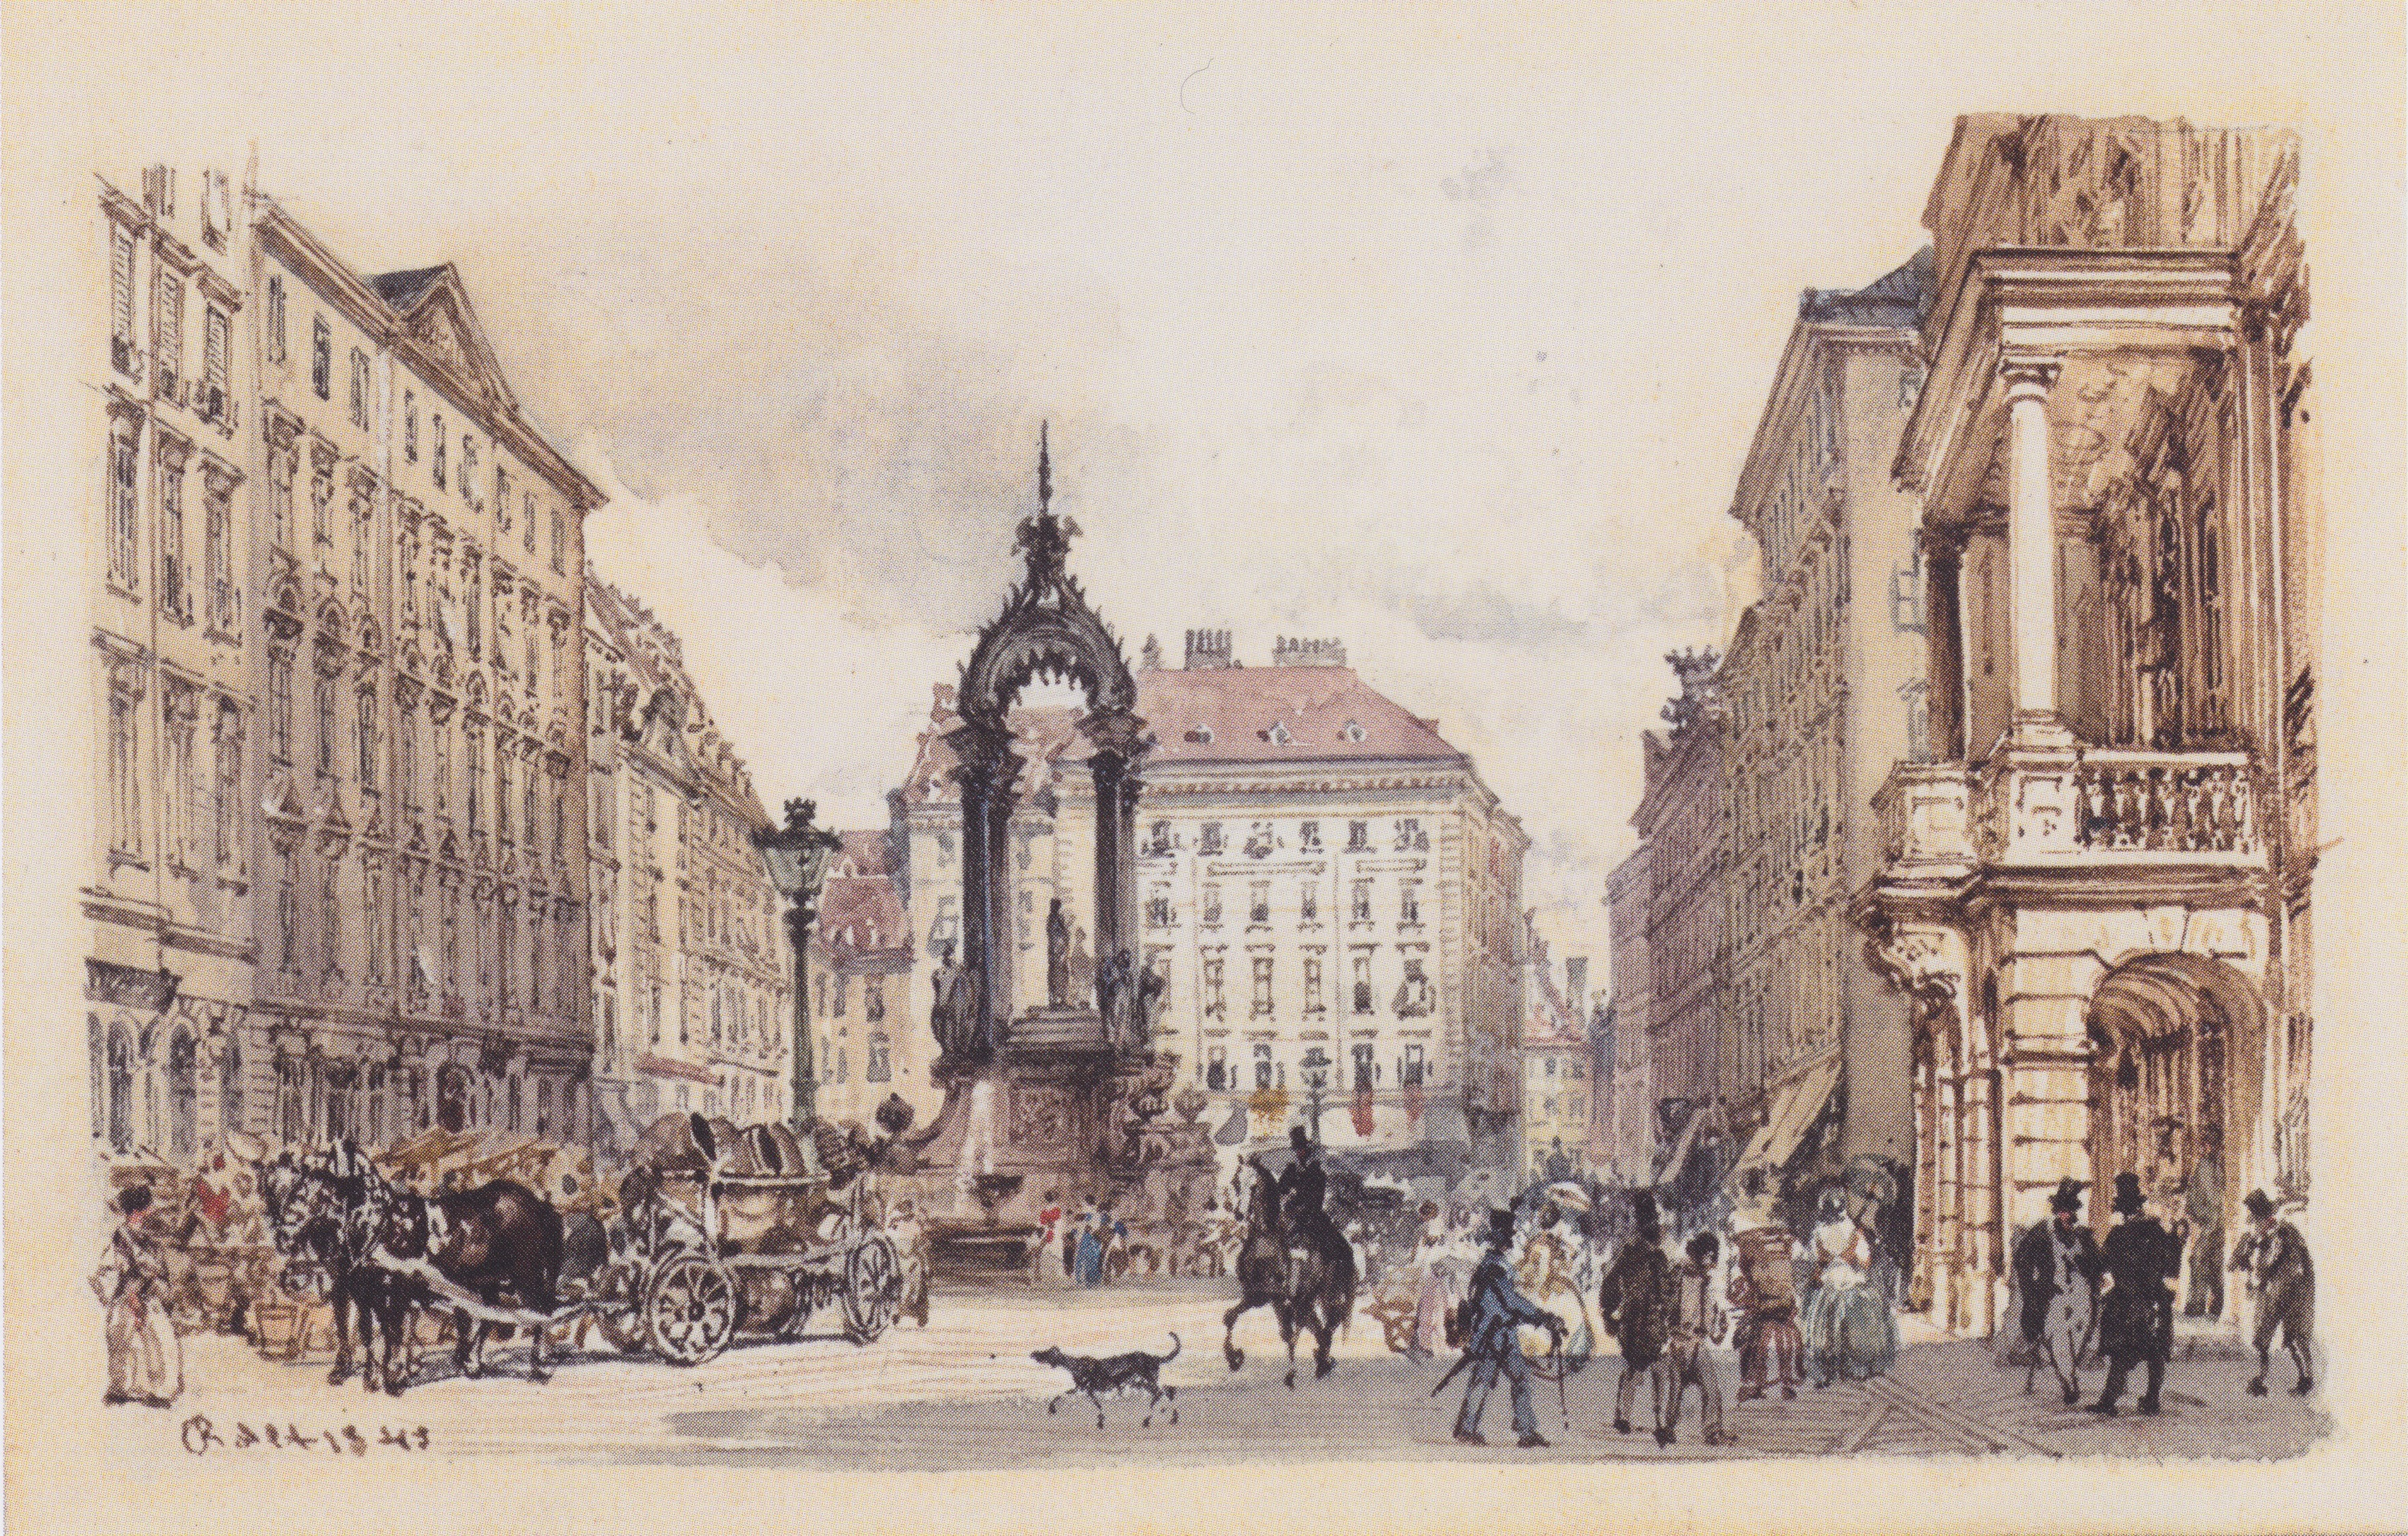 The large market in Vienna, 1845